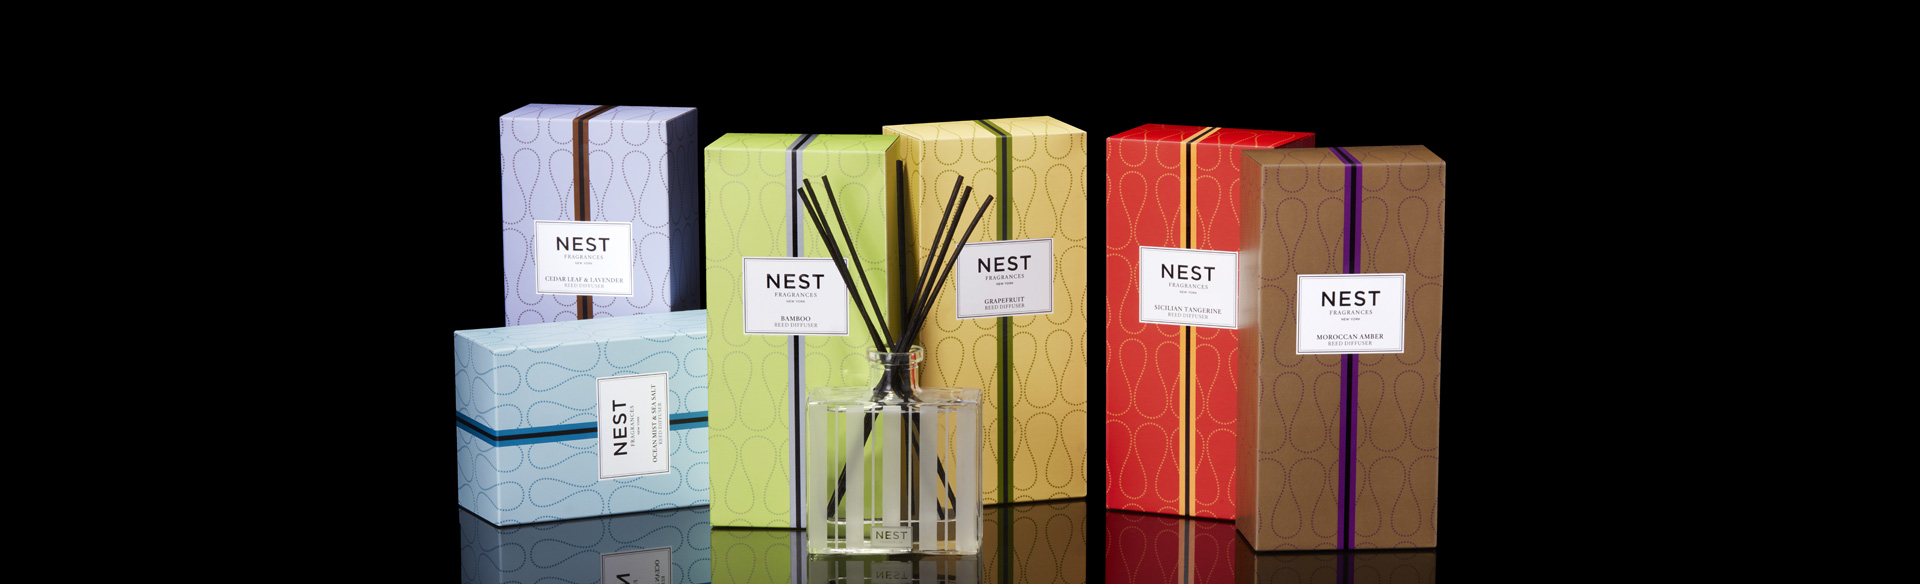 nest_diffusers